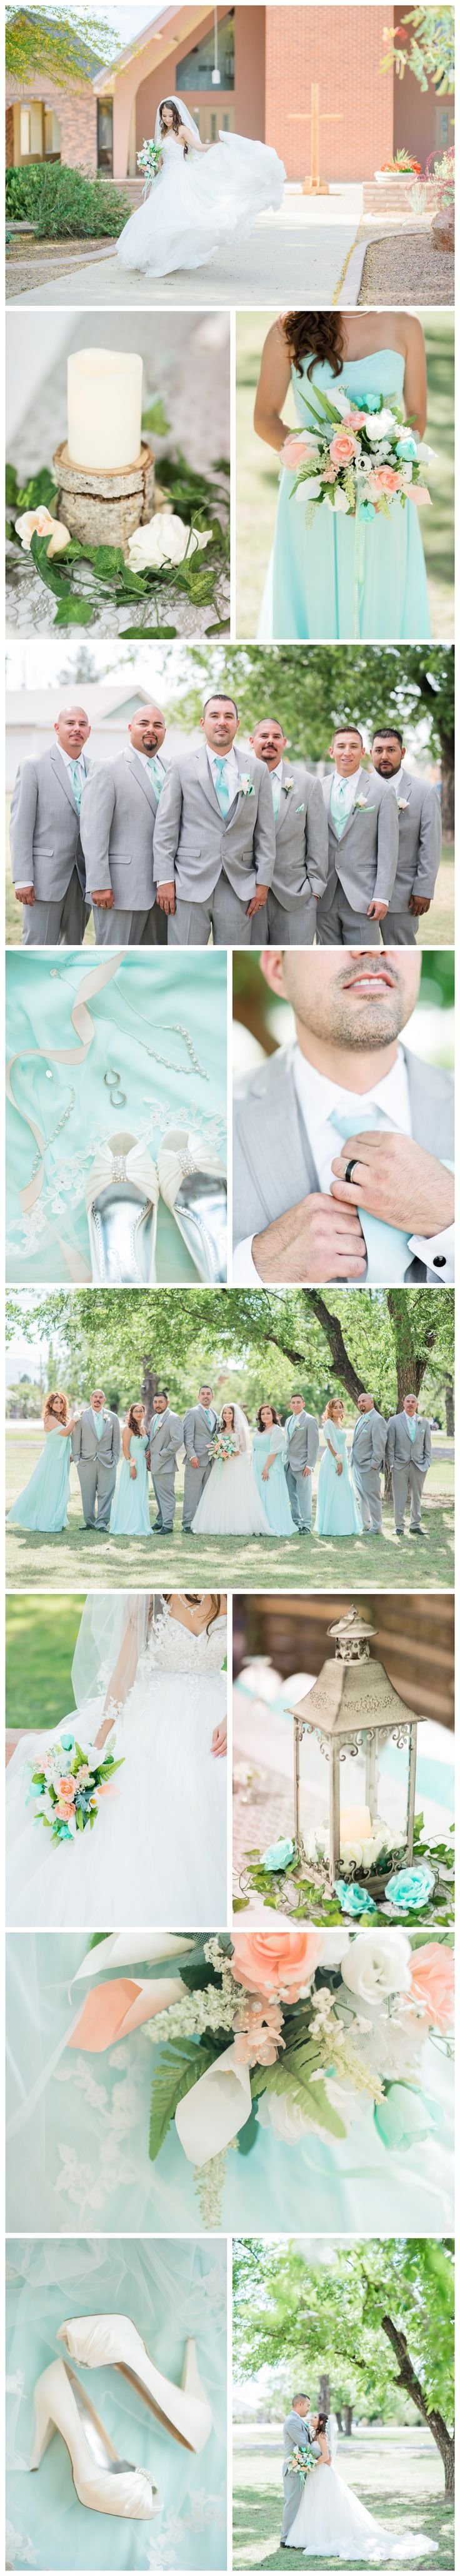 Mint and Blush Rustic Chic Wedding